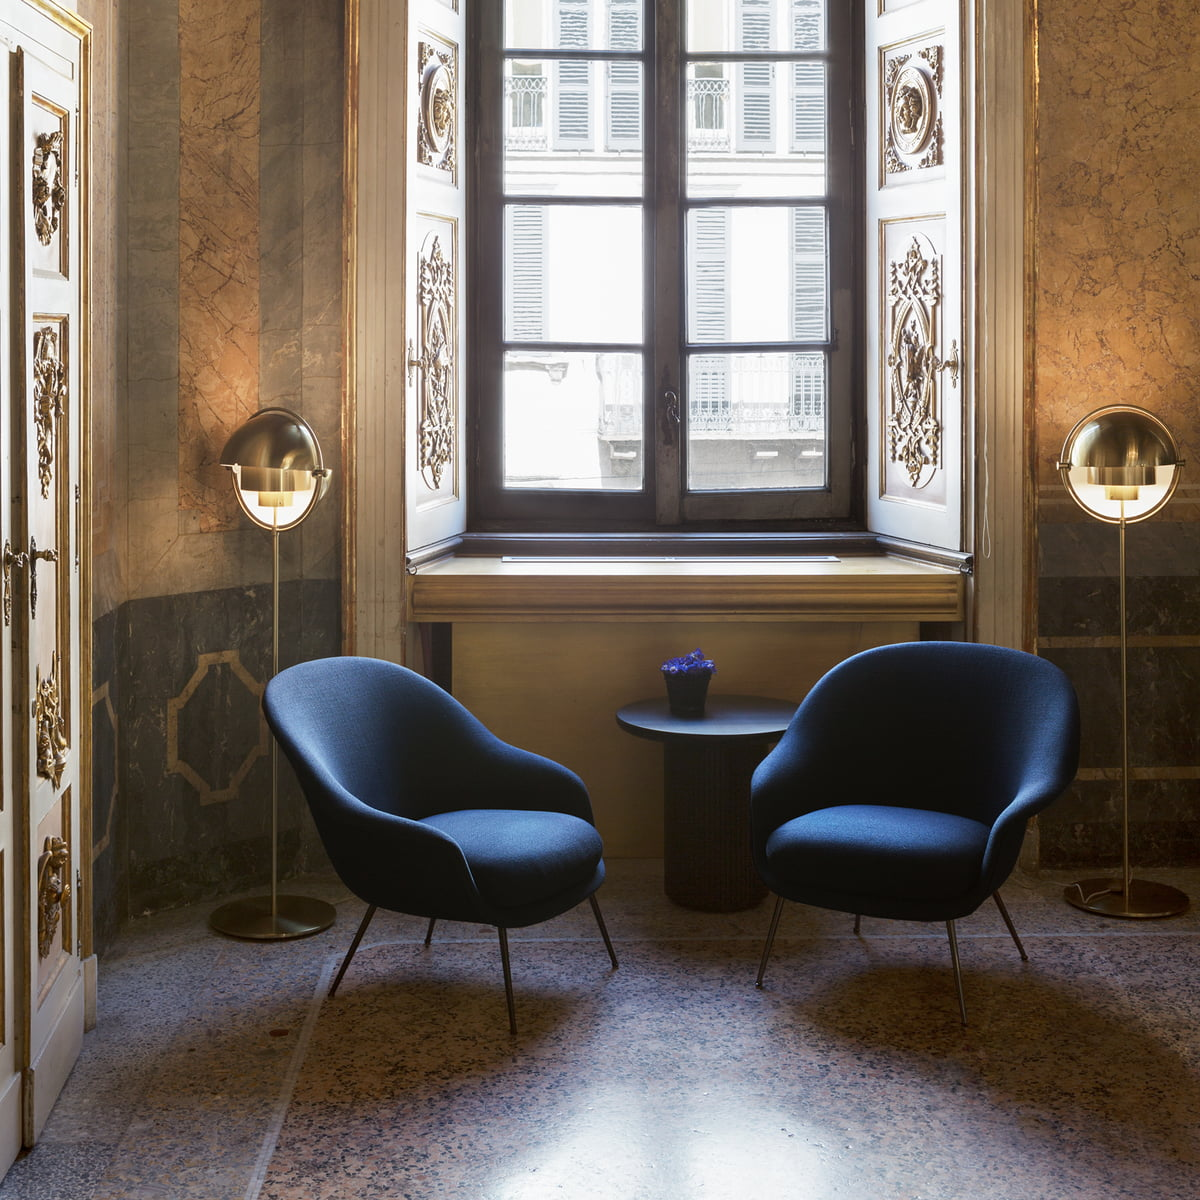 Moon Table Bat Lounge Chair And Multi Lite Floor Lamp By Gubi